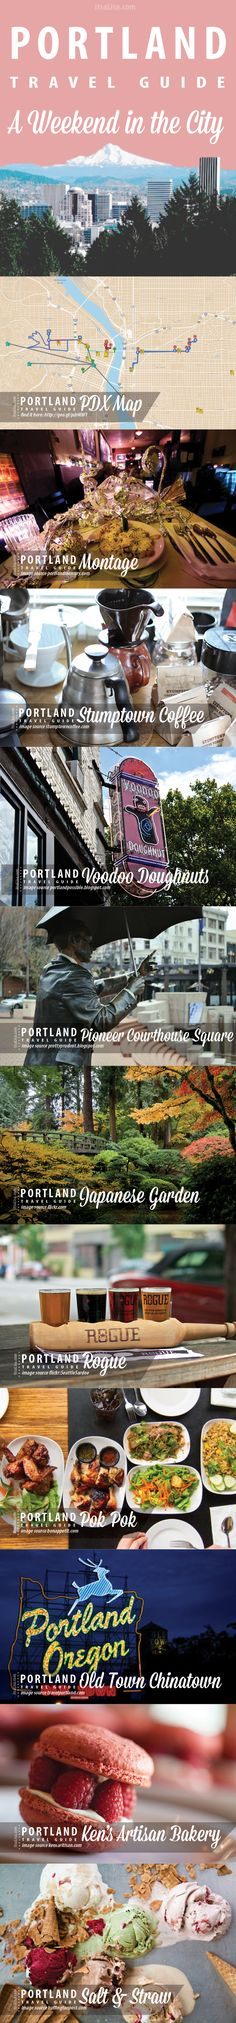 Portland Travel Guide | itsaLisa.com